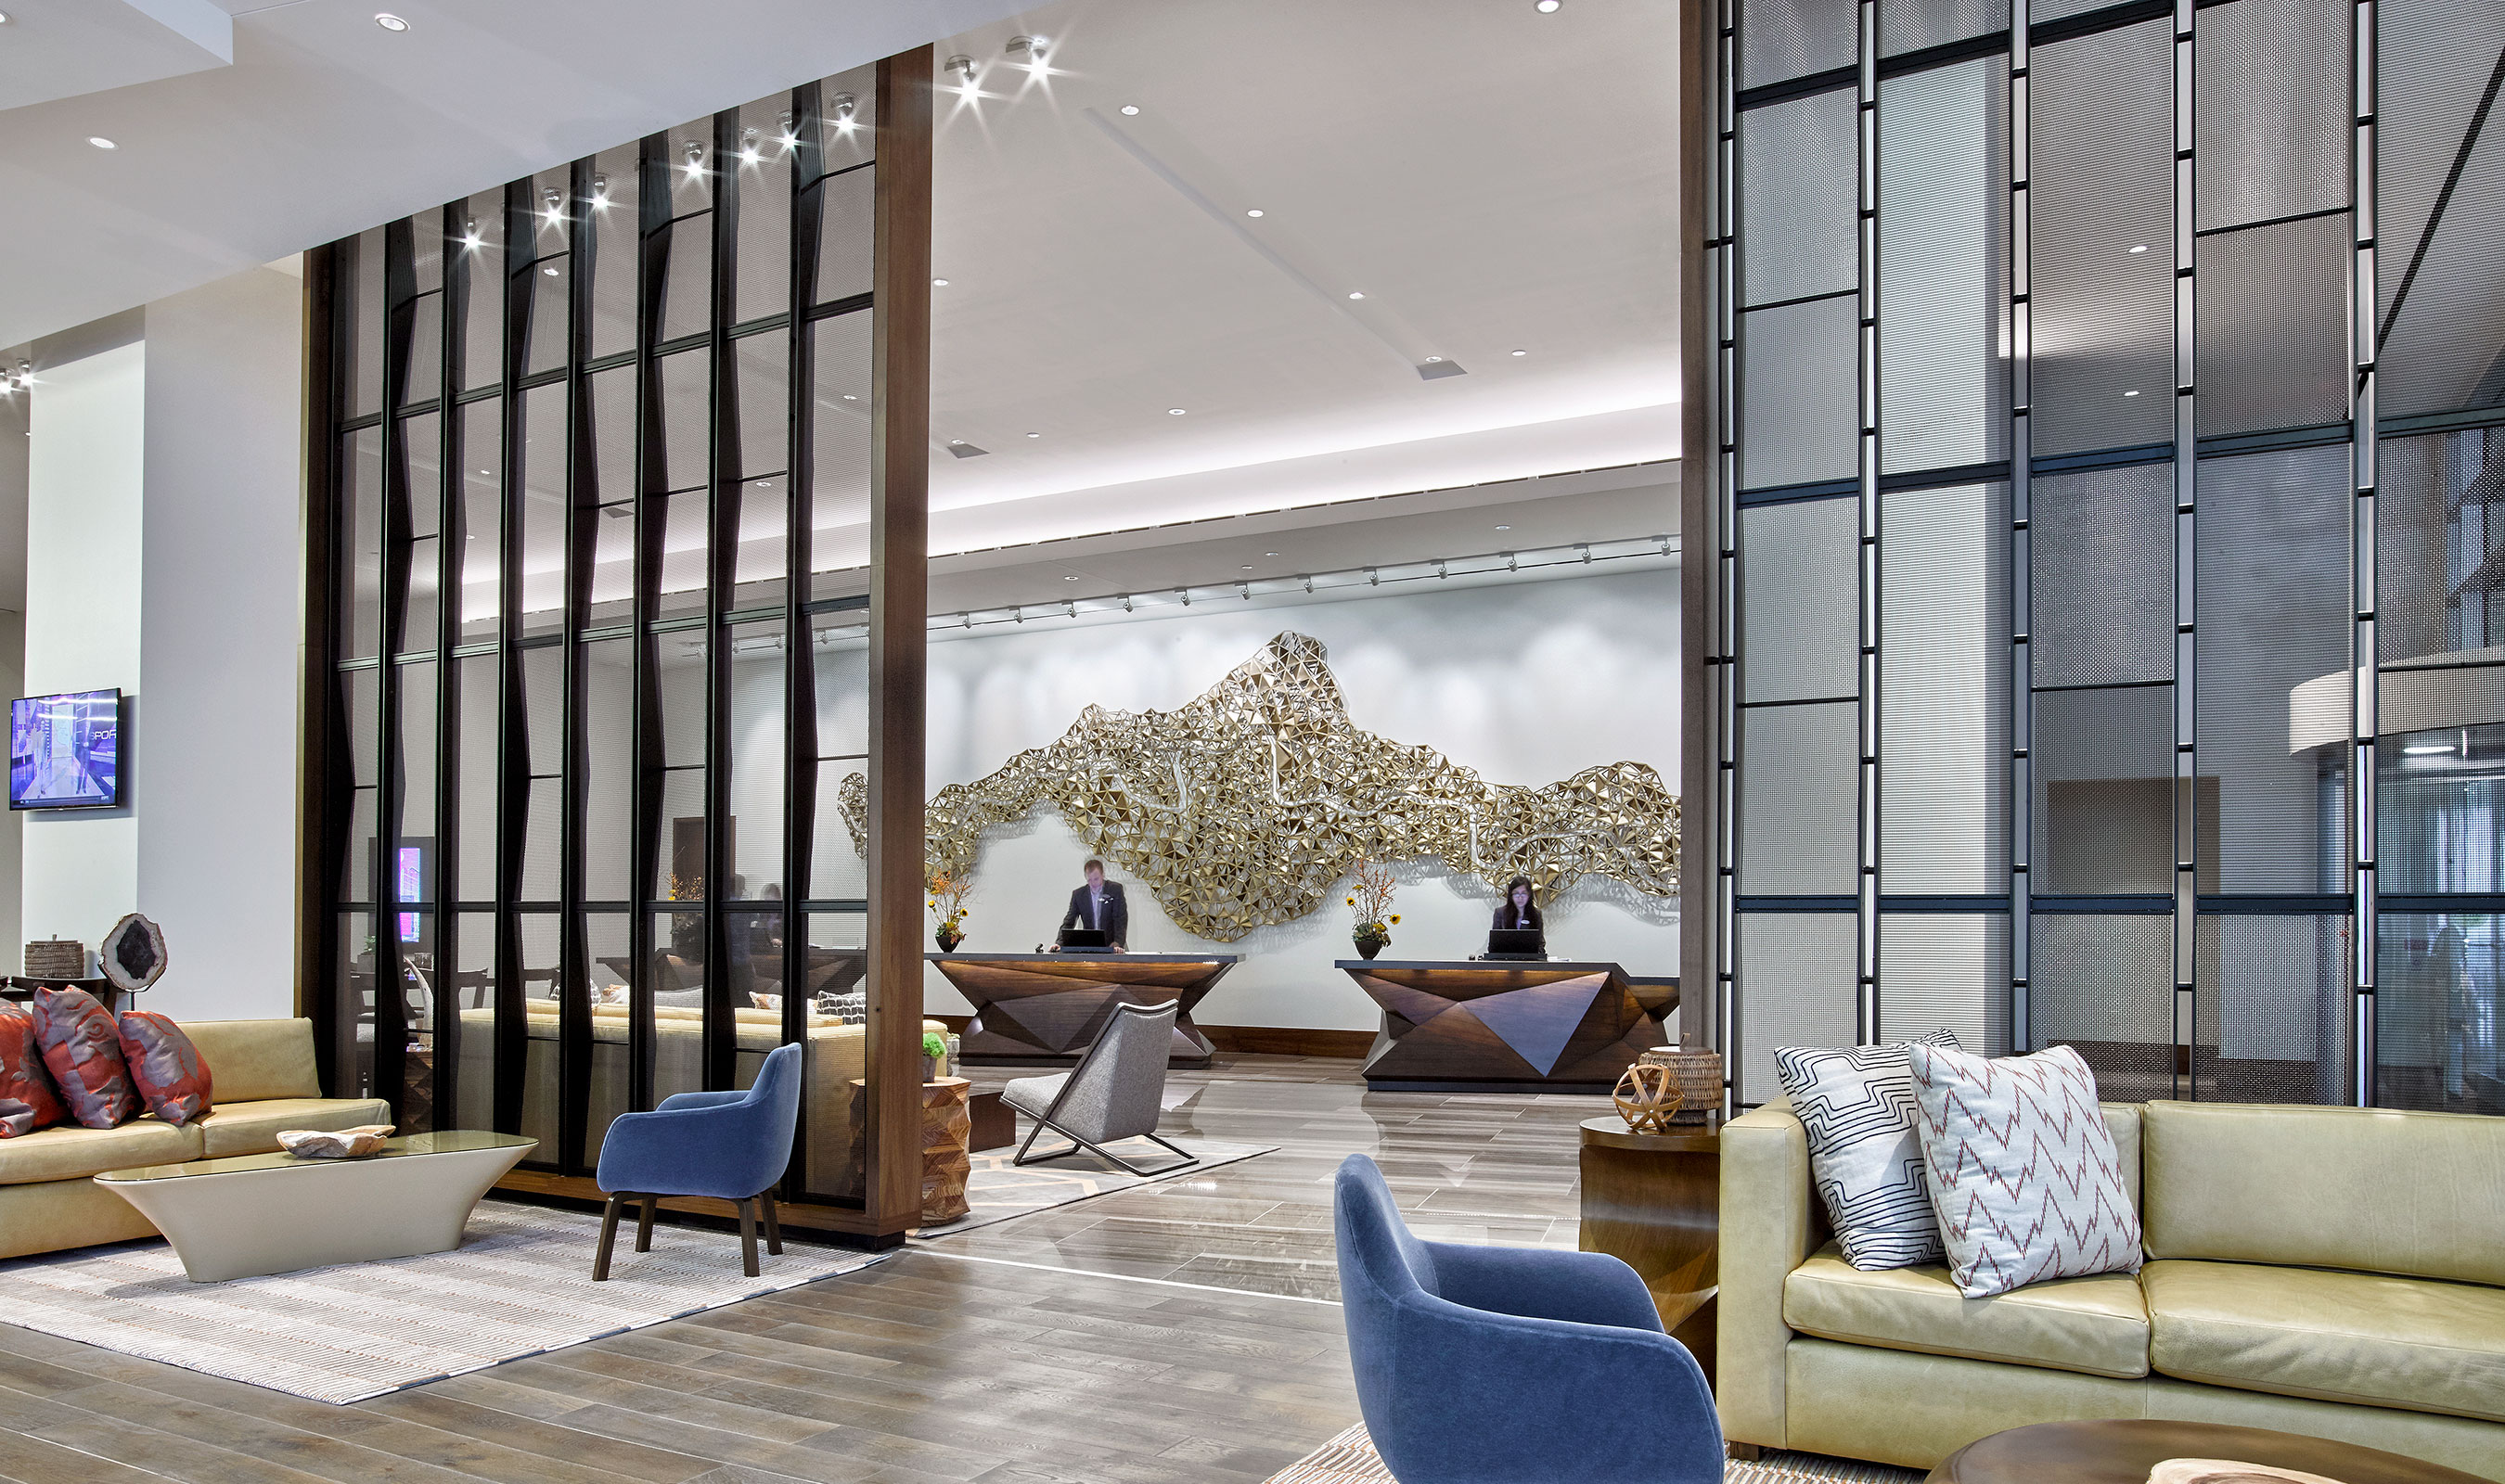 Overall, the full-height metal screens that undulate in and out, maintain transparency and allow daylight to permeate the lobby.